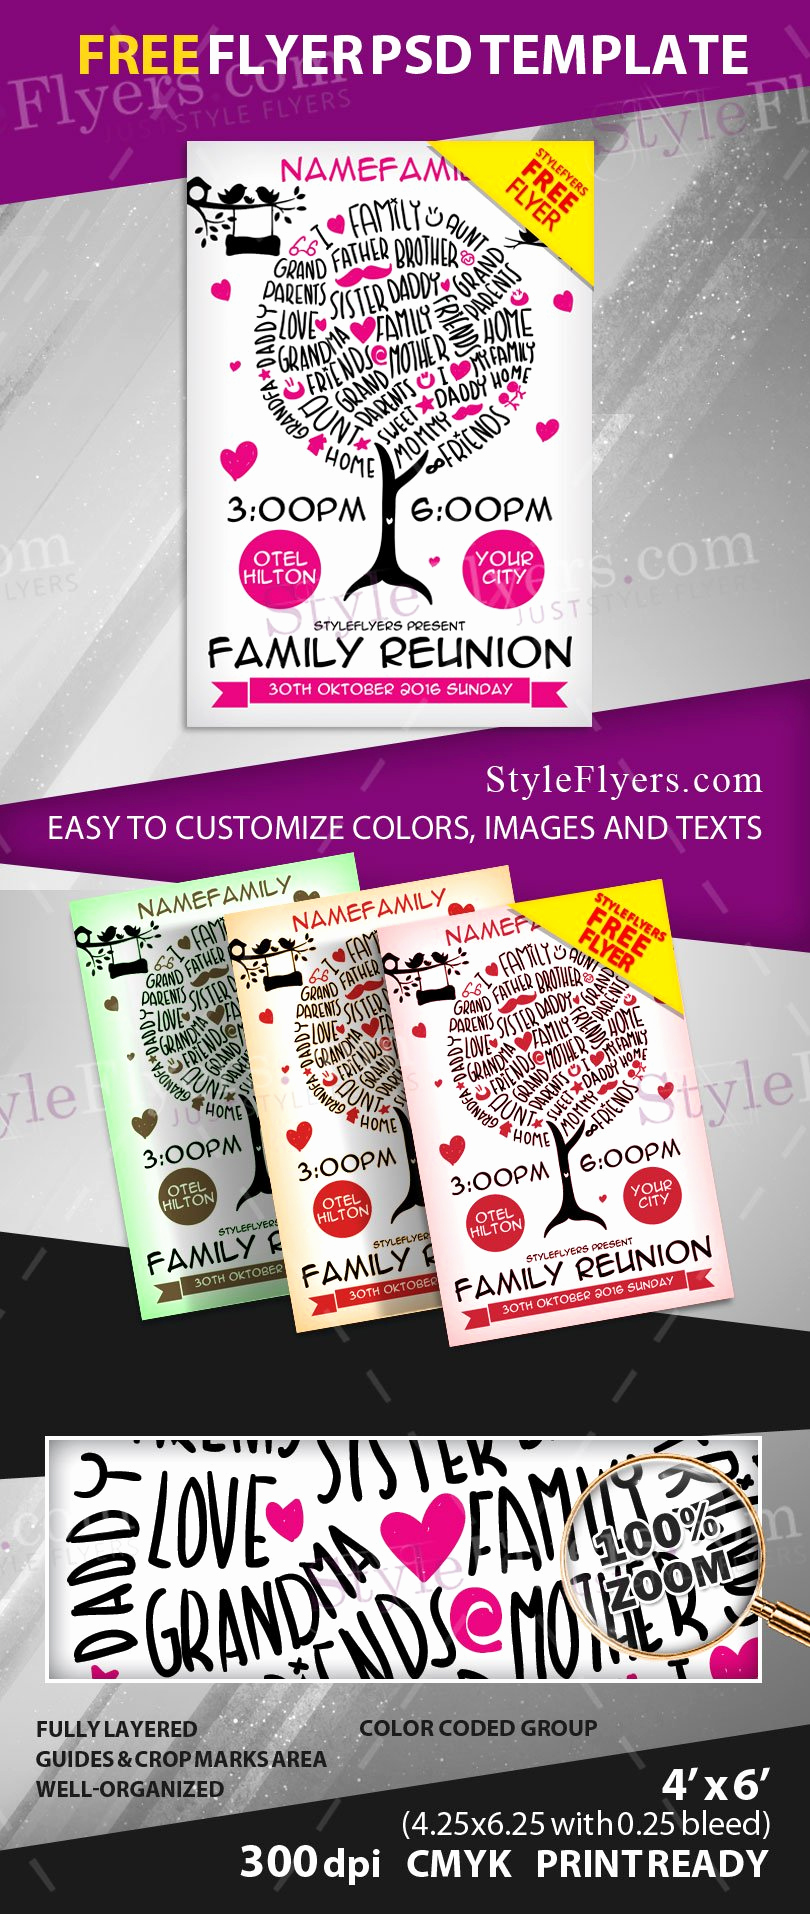 Family Reunion Flyers Templates Beautiful Family Reunion Free Psd Flyer Template Free Download